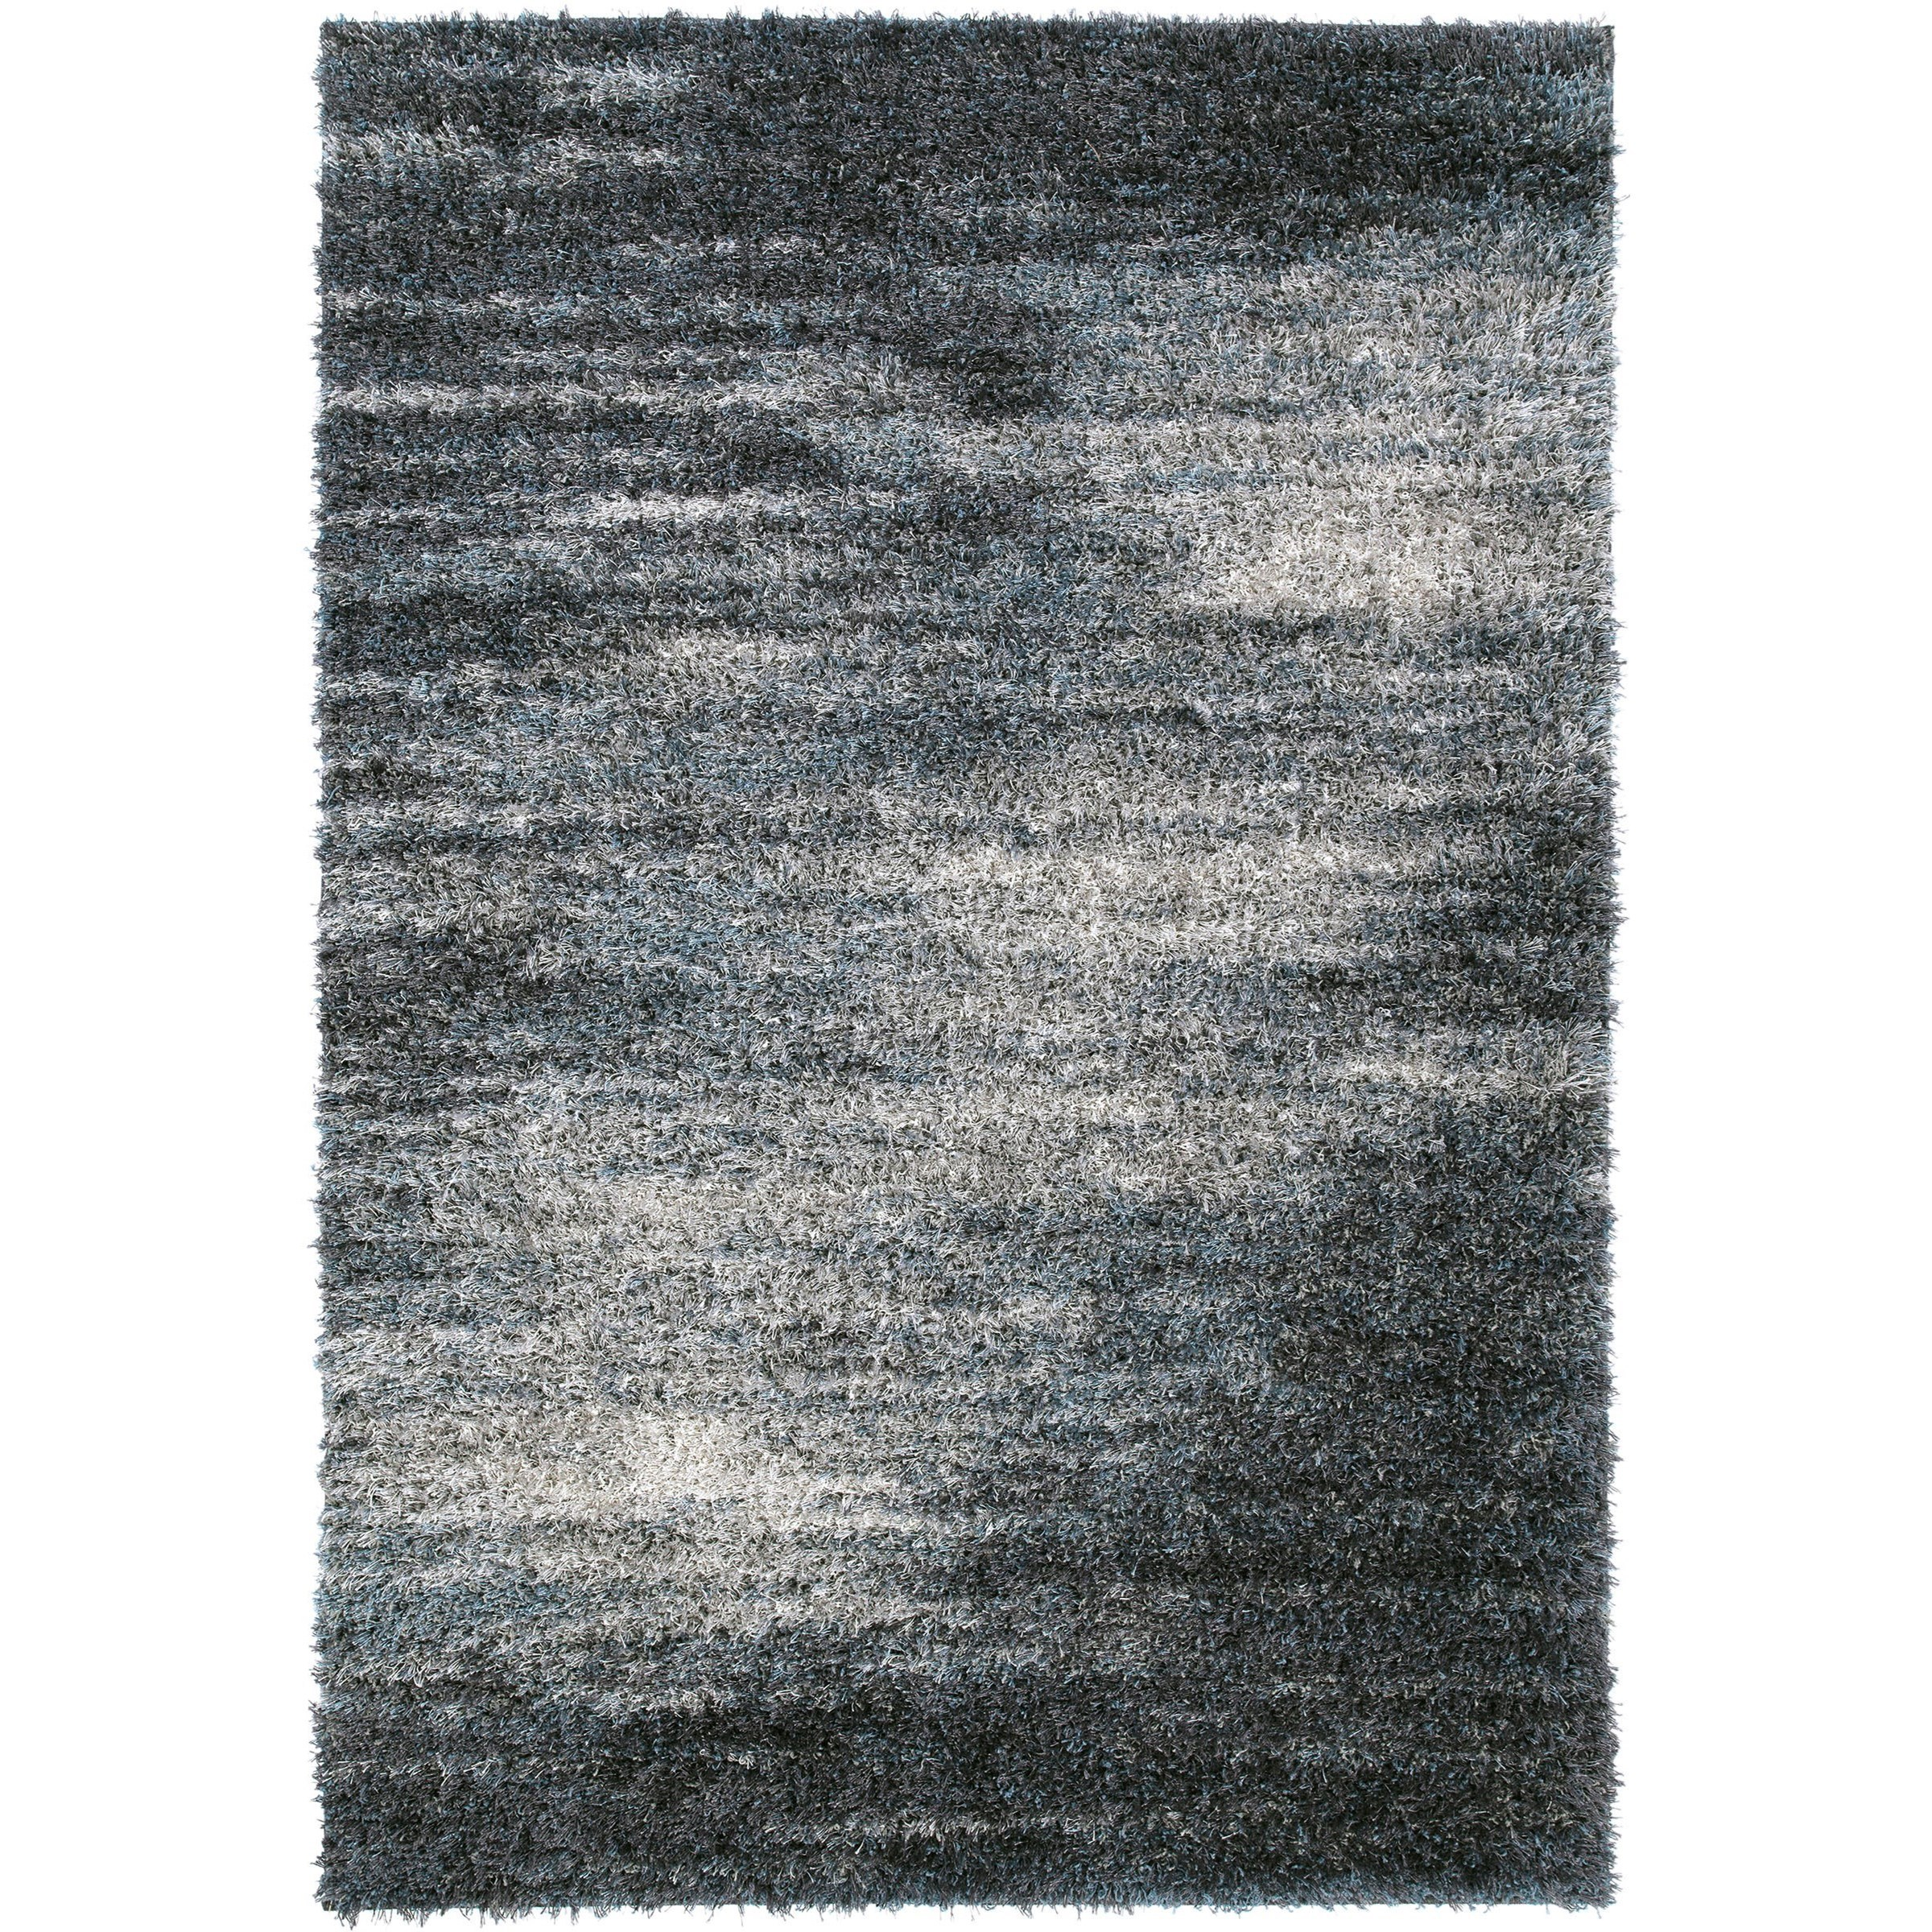 "Arturro Charcoal 3'3""X5'1"" Rug by Dalyn at Sadler's Home Furnishings"